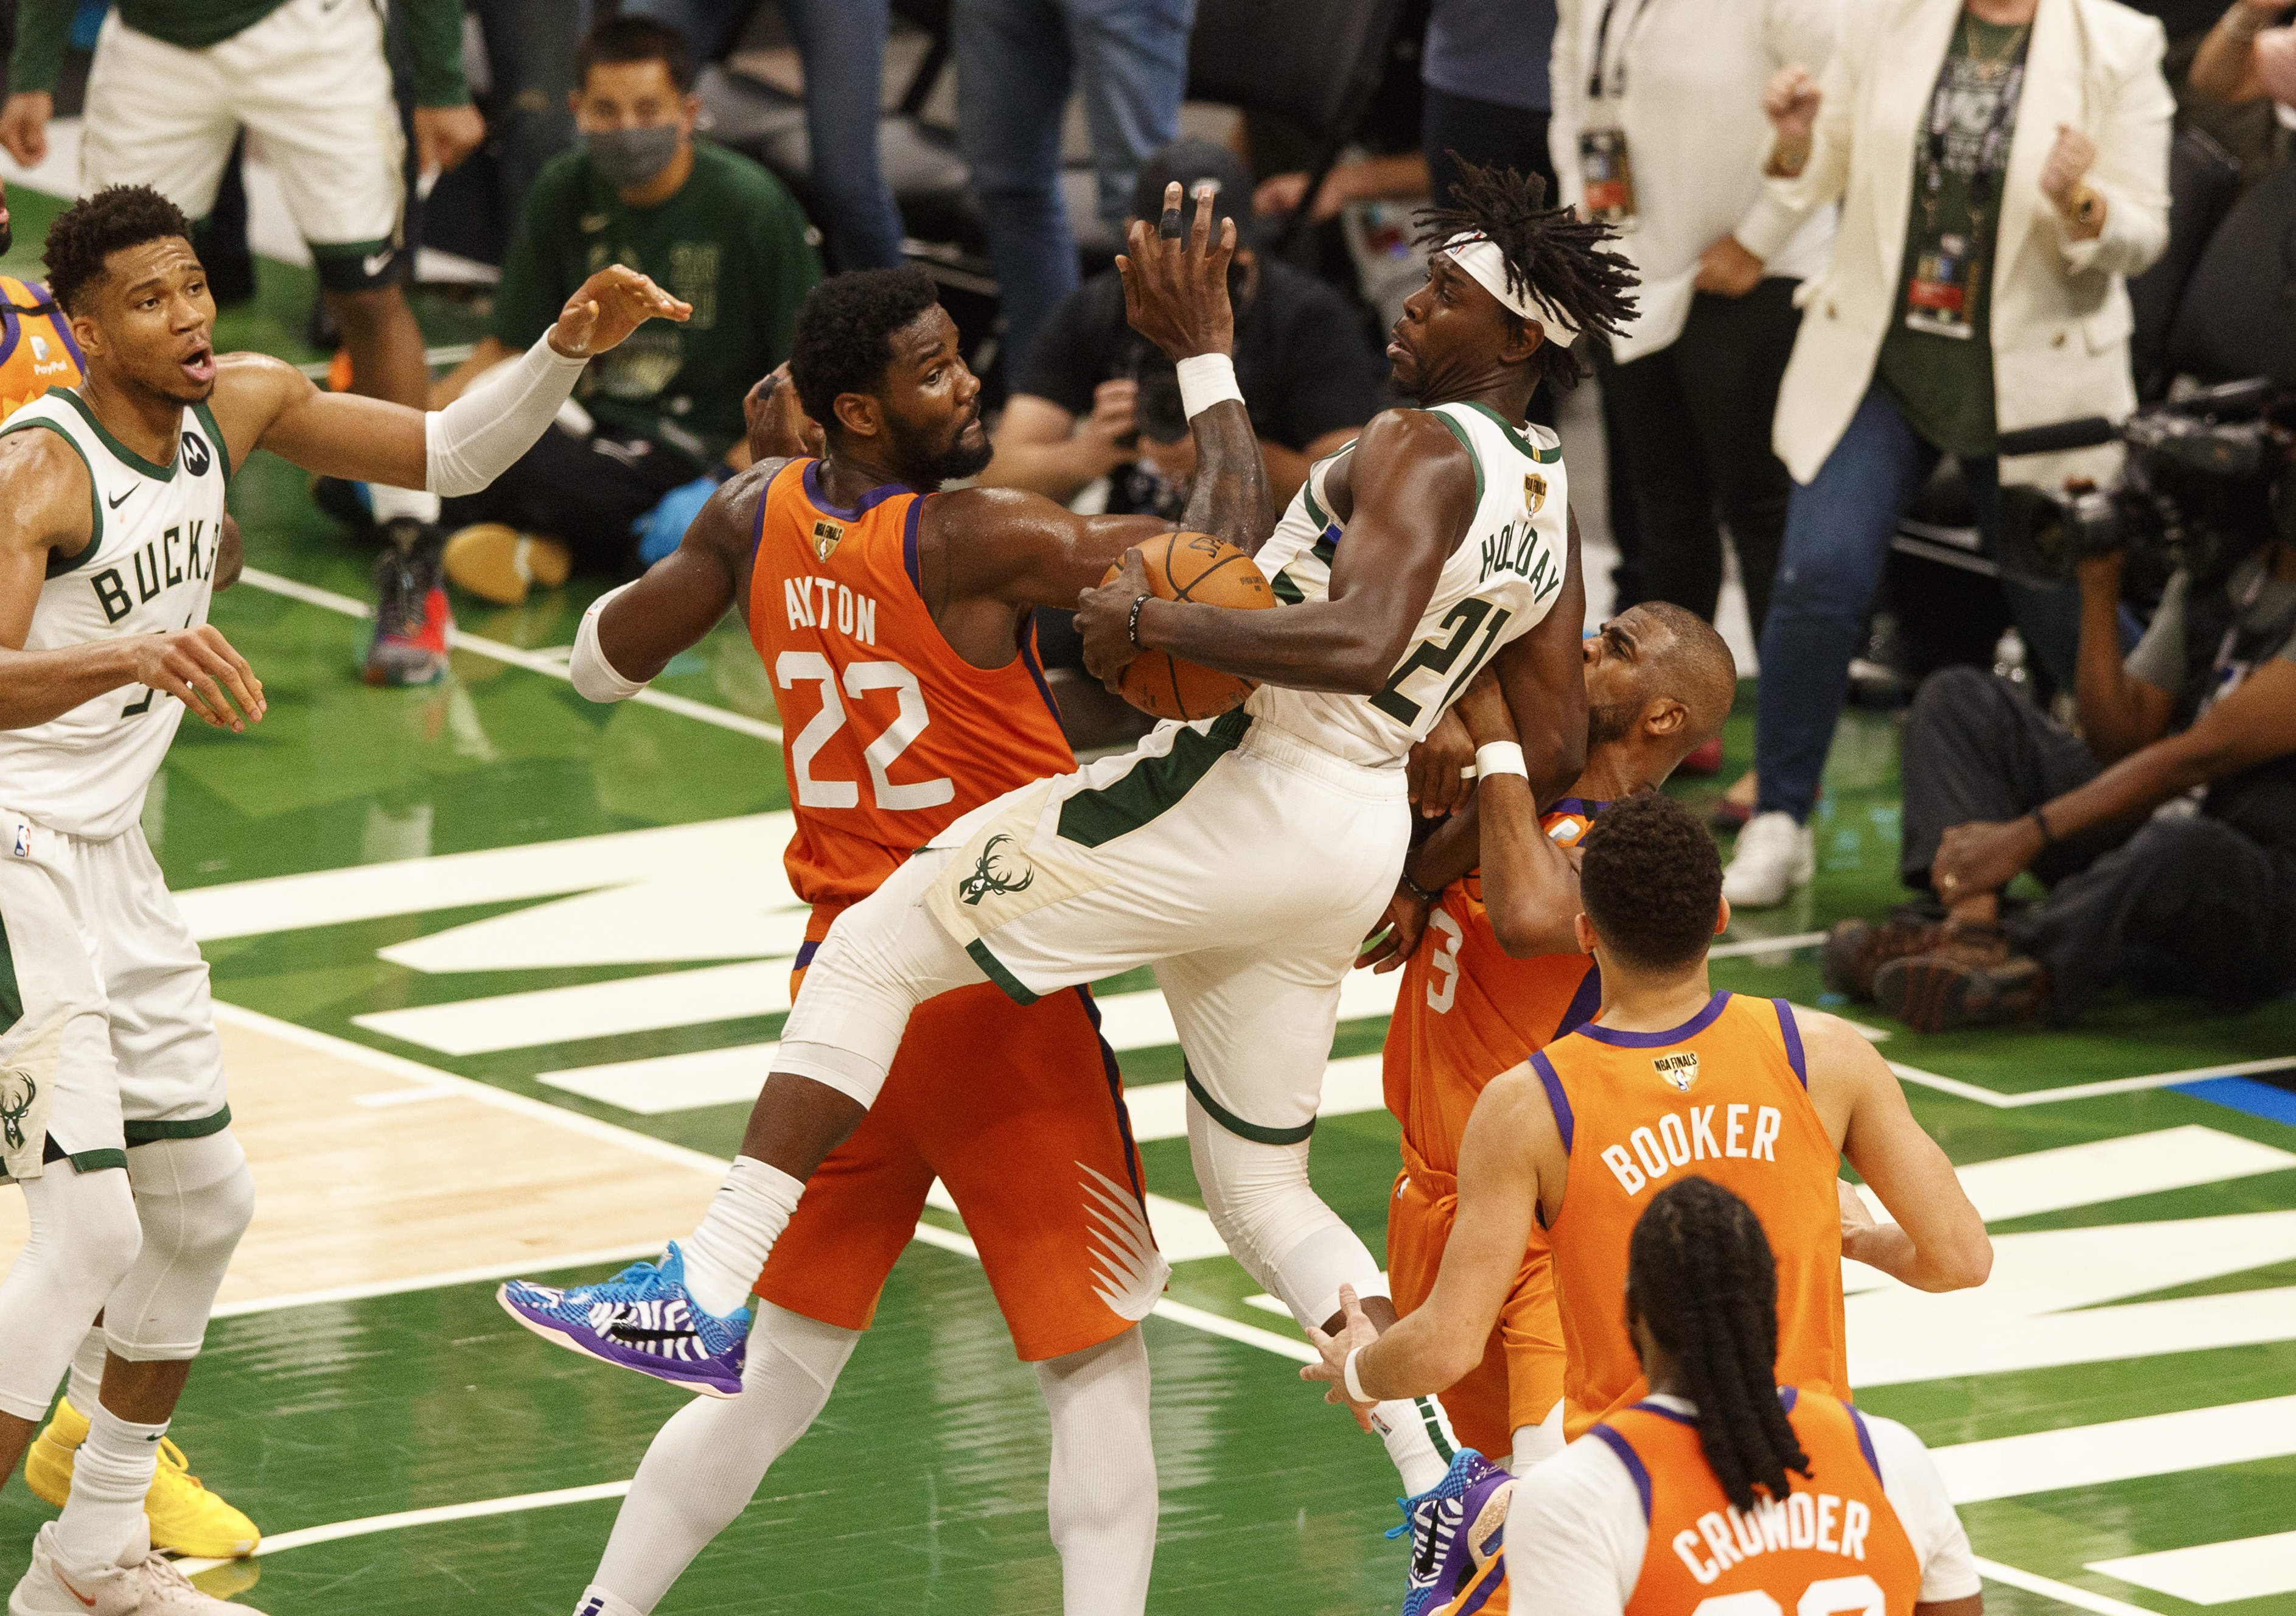 Jul 14, 2021; Milwaukee, Wisconsin, USA; Milwaukee Bucks guard Jrue Holiday (21) grabs the ball behind Phoenix Suns center Deandre Ayton (22) during the fourth quarter during game four of the 2021 NBA Finals at Fiserv Forum. Mandatory Credit: Jeff Hanisch-USA TODAY Sports